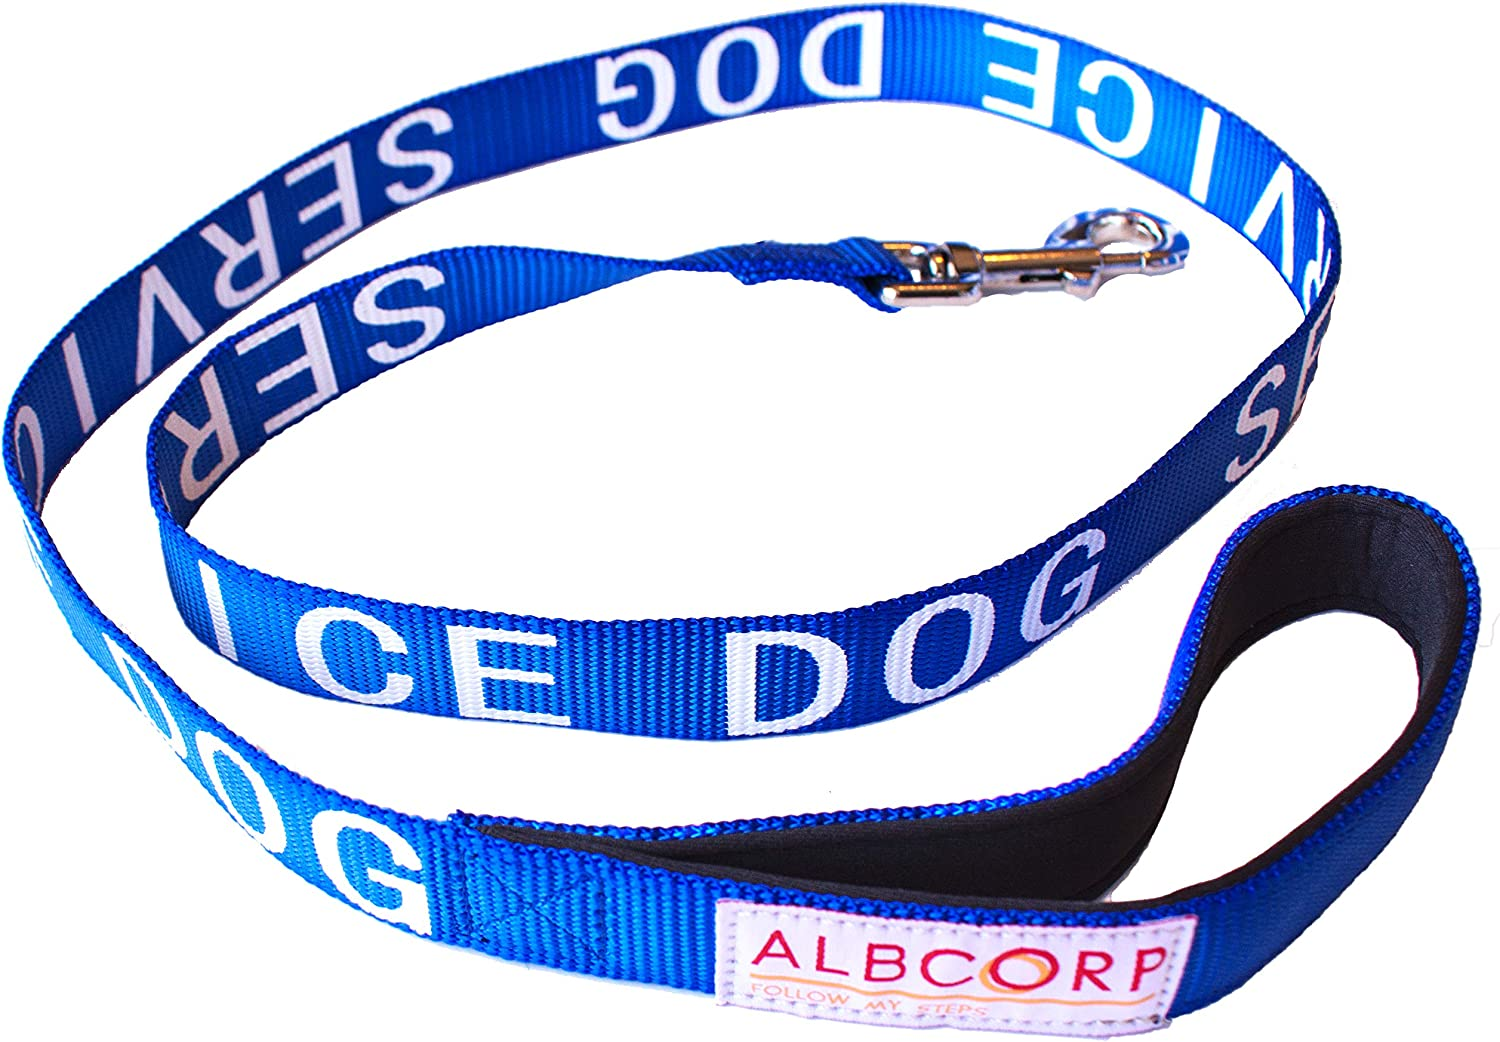 ALBCORP Padded Service Dog Leash  with Neoprene Handle  and Reflective SilkScreen Print, for use on Harnesses,Vests, Collars 4 Foot bluee